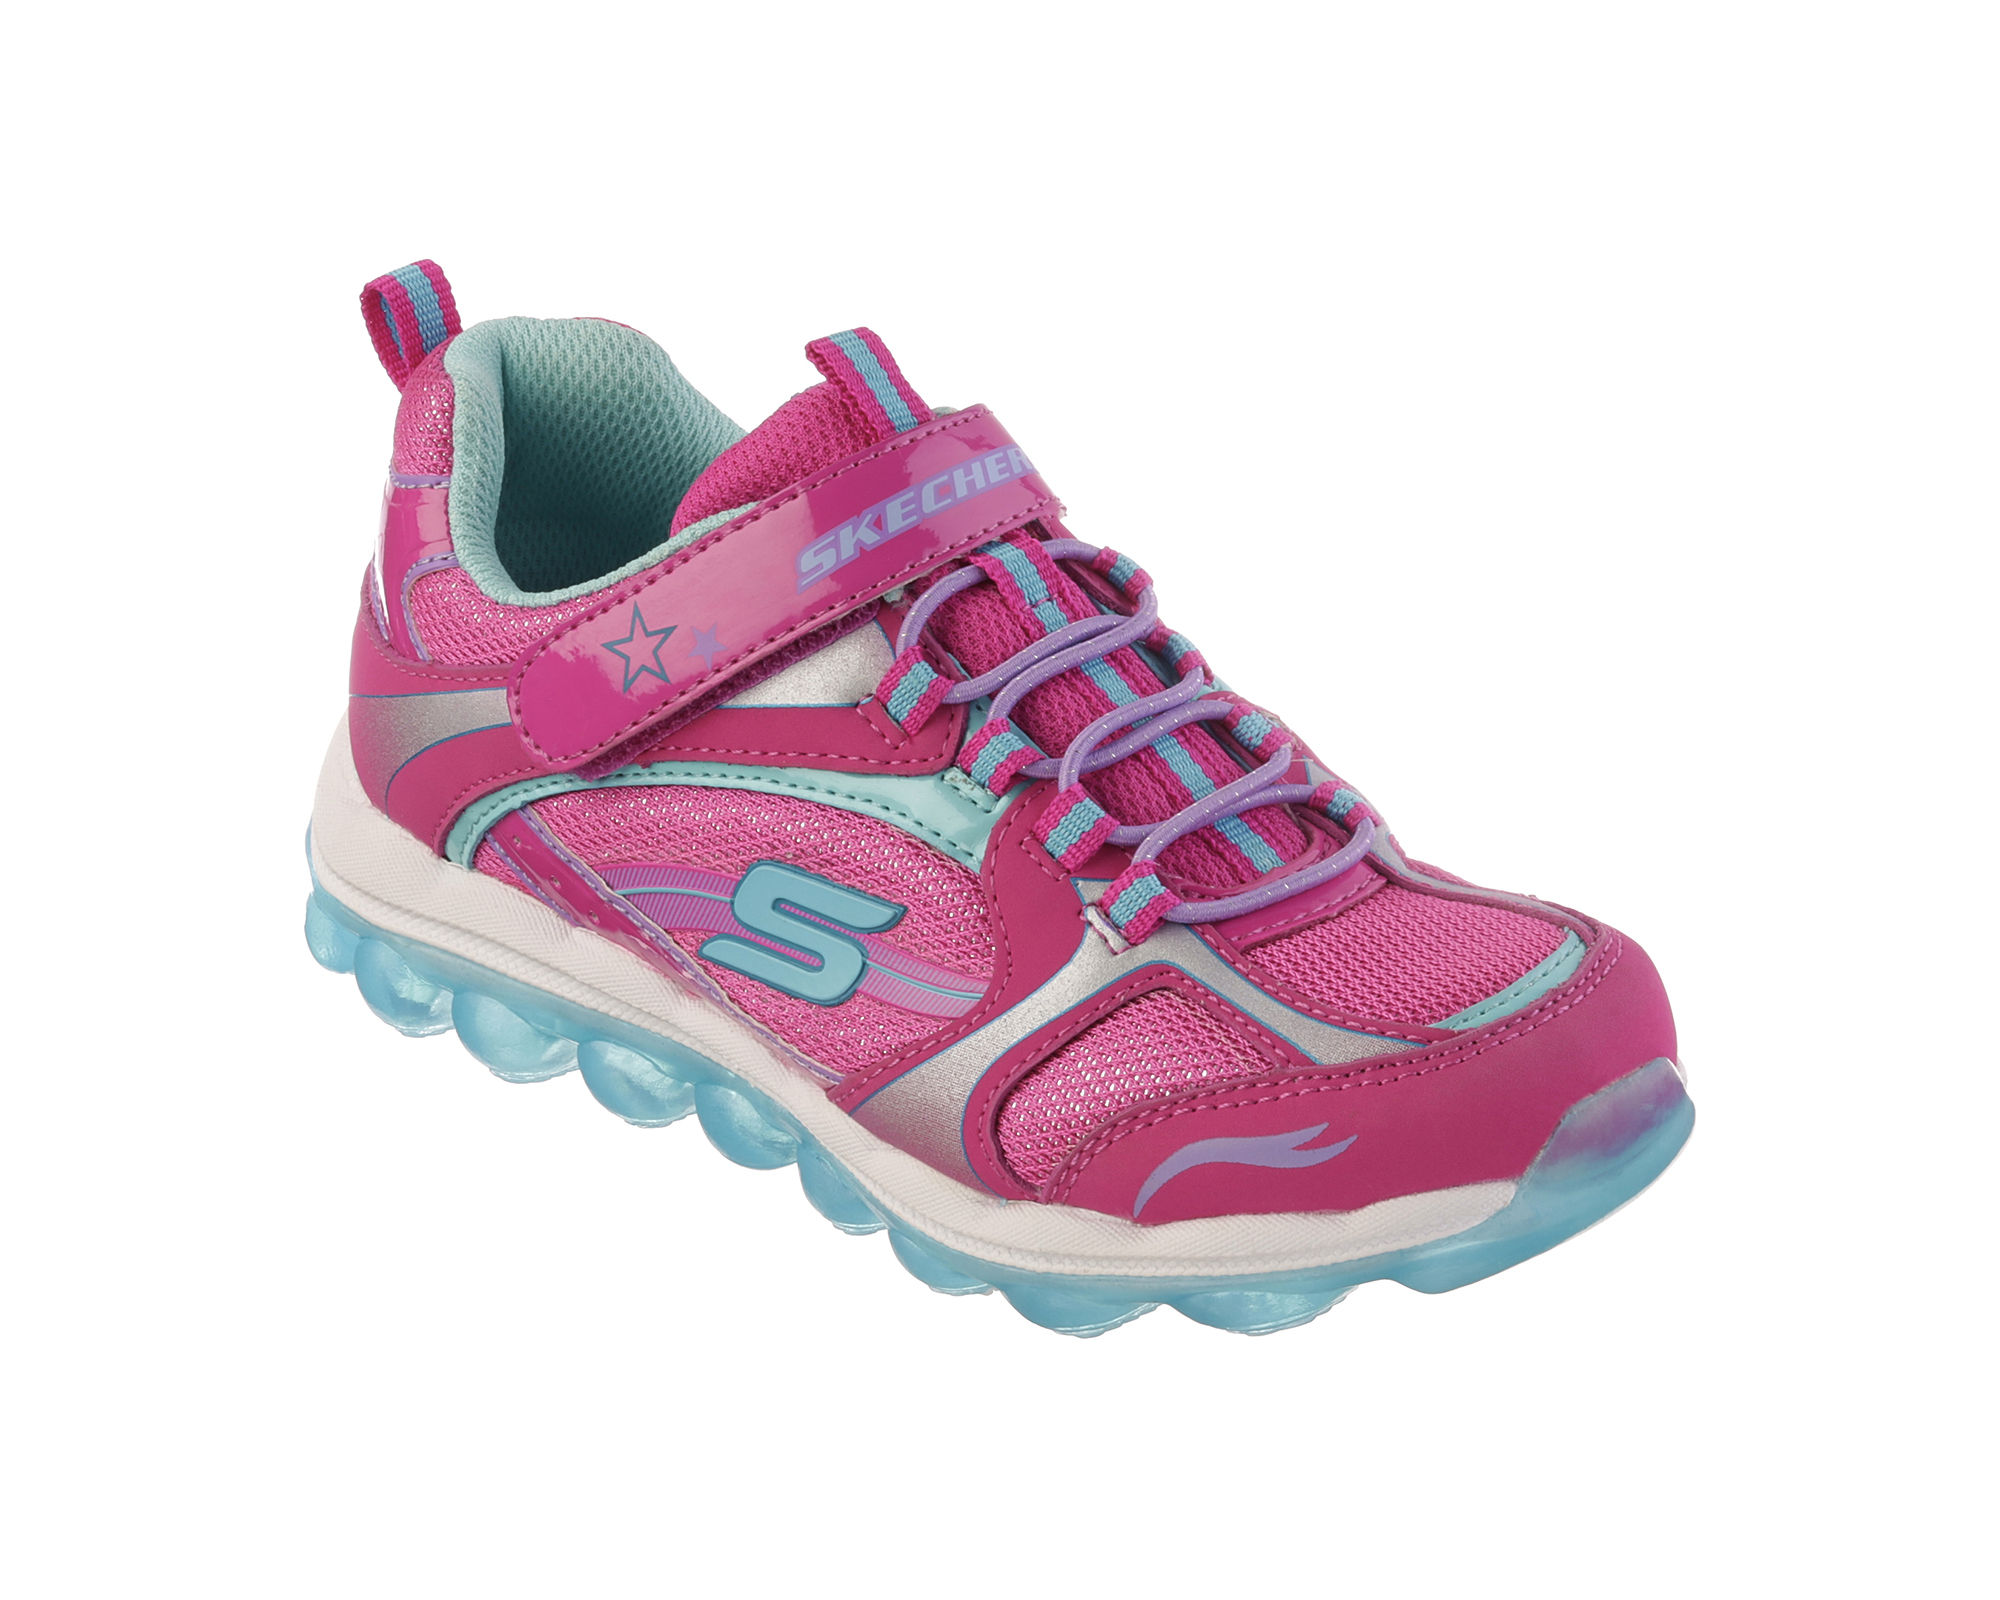 Kids' Skechers provide all-day comfort that will keep them feeling great. Shop Kohl's for all your footwear needs, and take the first step toward fiding a great pair of shoes! Kohl's features many different styles of Sketchers shoes for your whole familiy, including boy's Skechers shoes and girl's Skechers shoes.